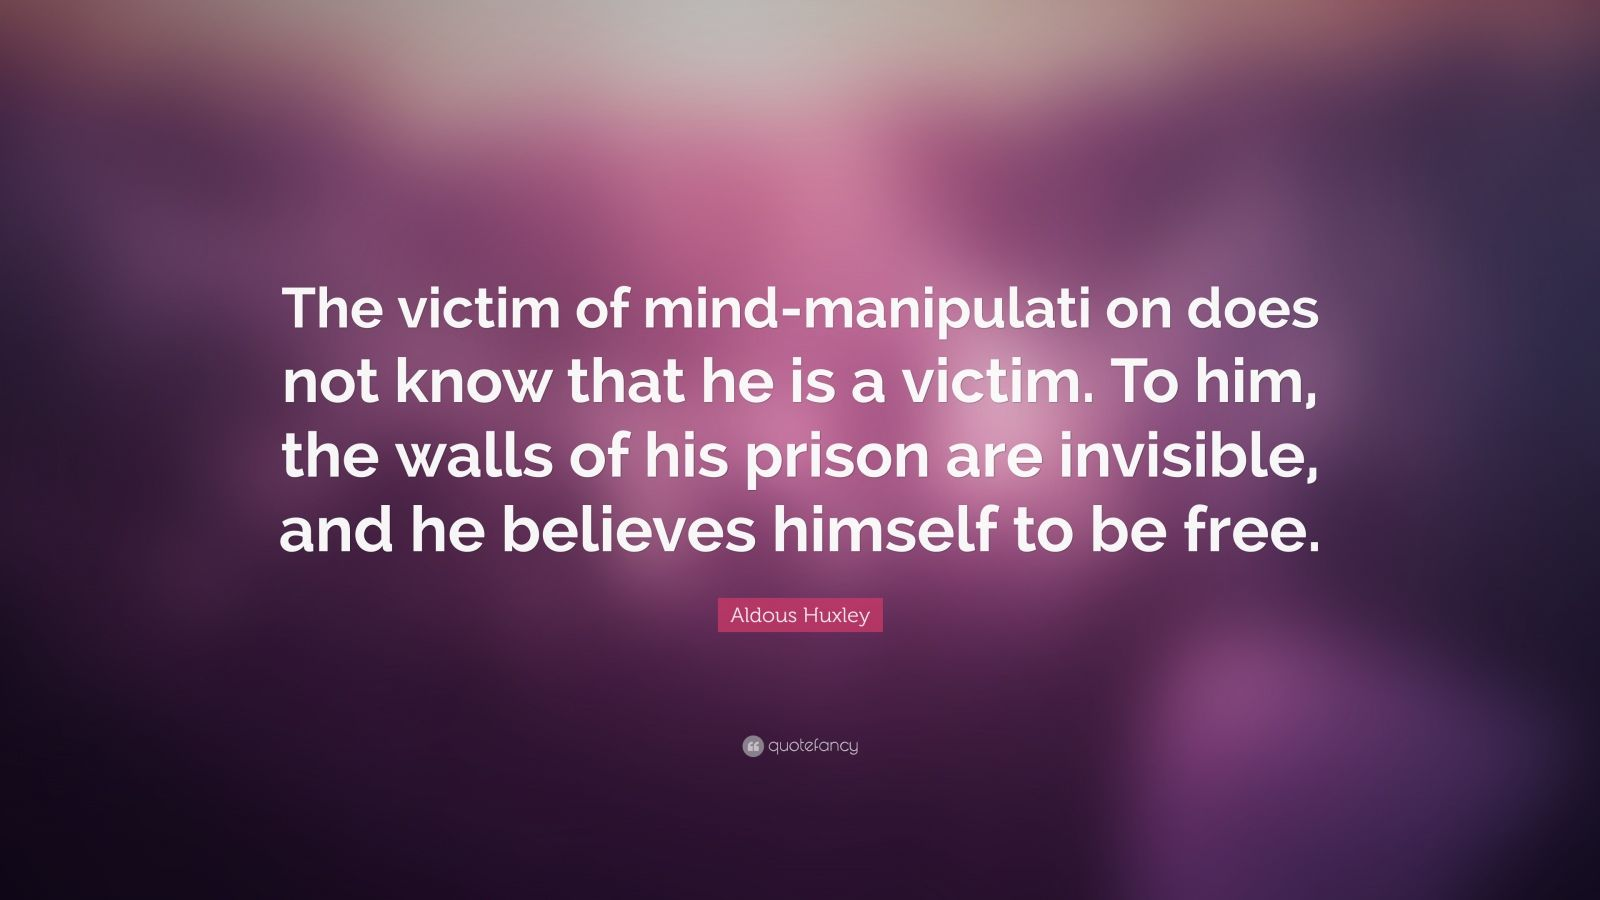 "Aldous Huxley Quote: ""The victim of mind-manipulati on does not know that he is a victim. To him, the walls of his prison are invisible, and he believes himself to be free."""